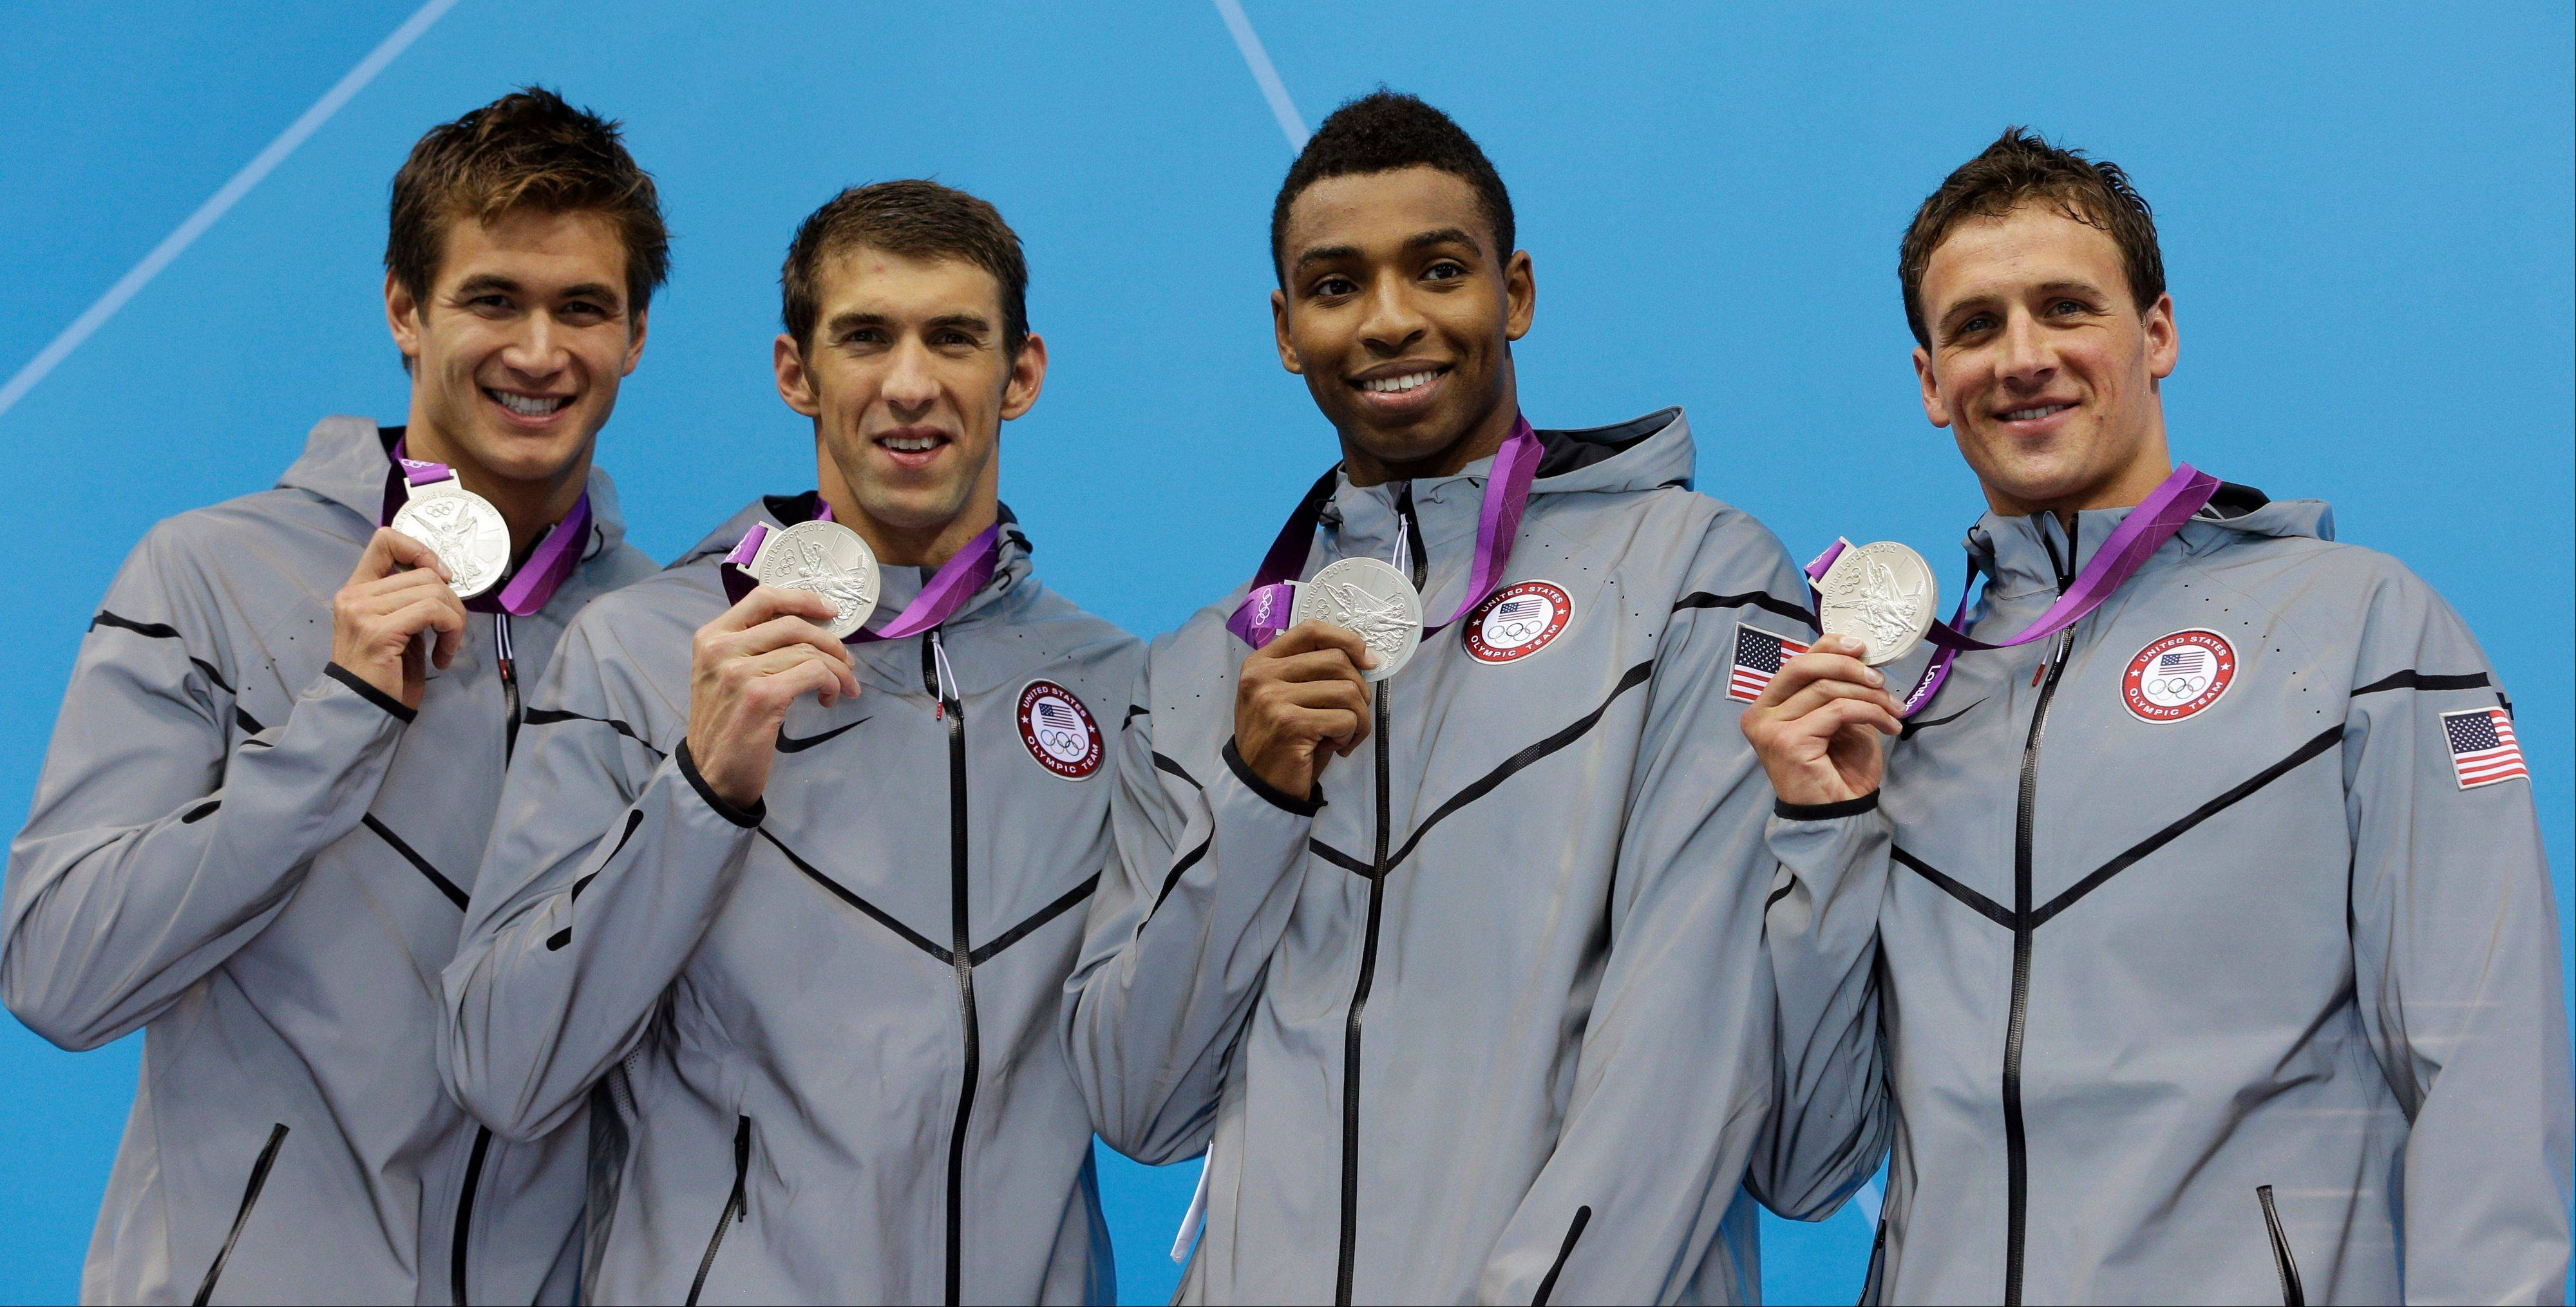 From left, United States' Nathan Adrian, United States' Michael Phelps, United States' Cullen Jones and United States' Ryan Lochte pose with their medals for the men's 4x100-meter freestyle relay final Sunday at the Aquatics Centre in the Olympic Park during the 2012 Summer Olympics in London.